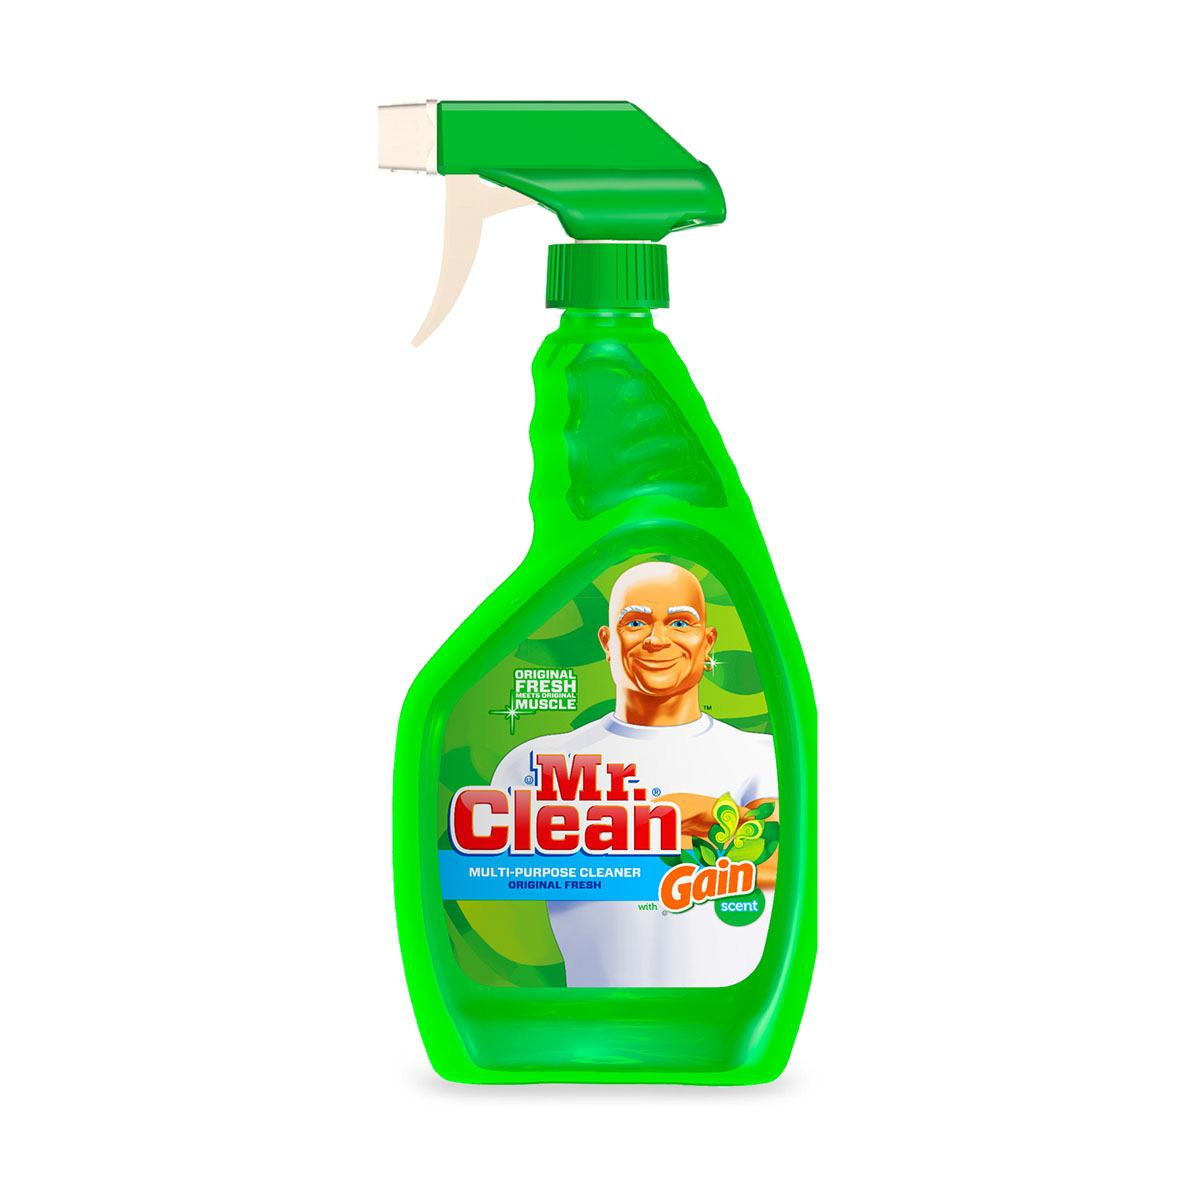 Mr. Clean Multi-Surfaces Spray Cleaner with Gain Original Scent